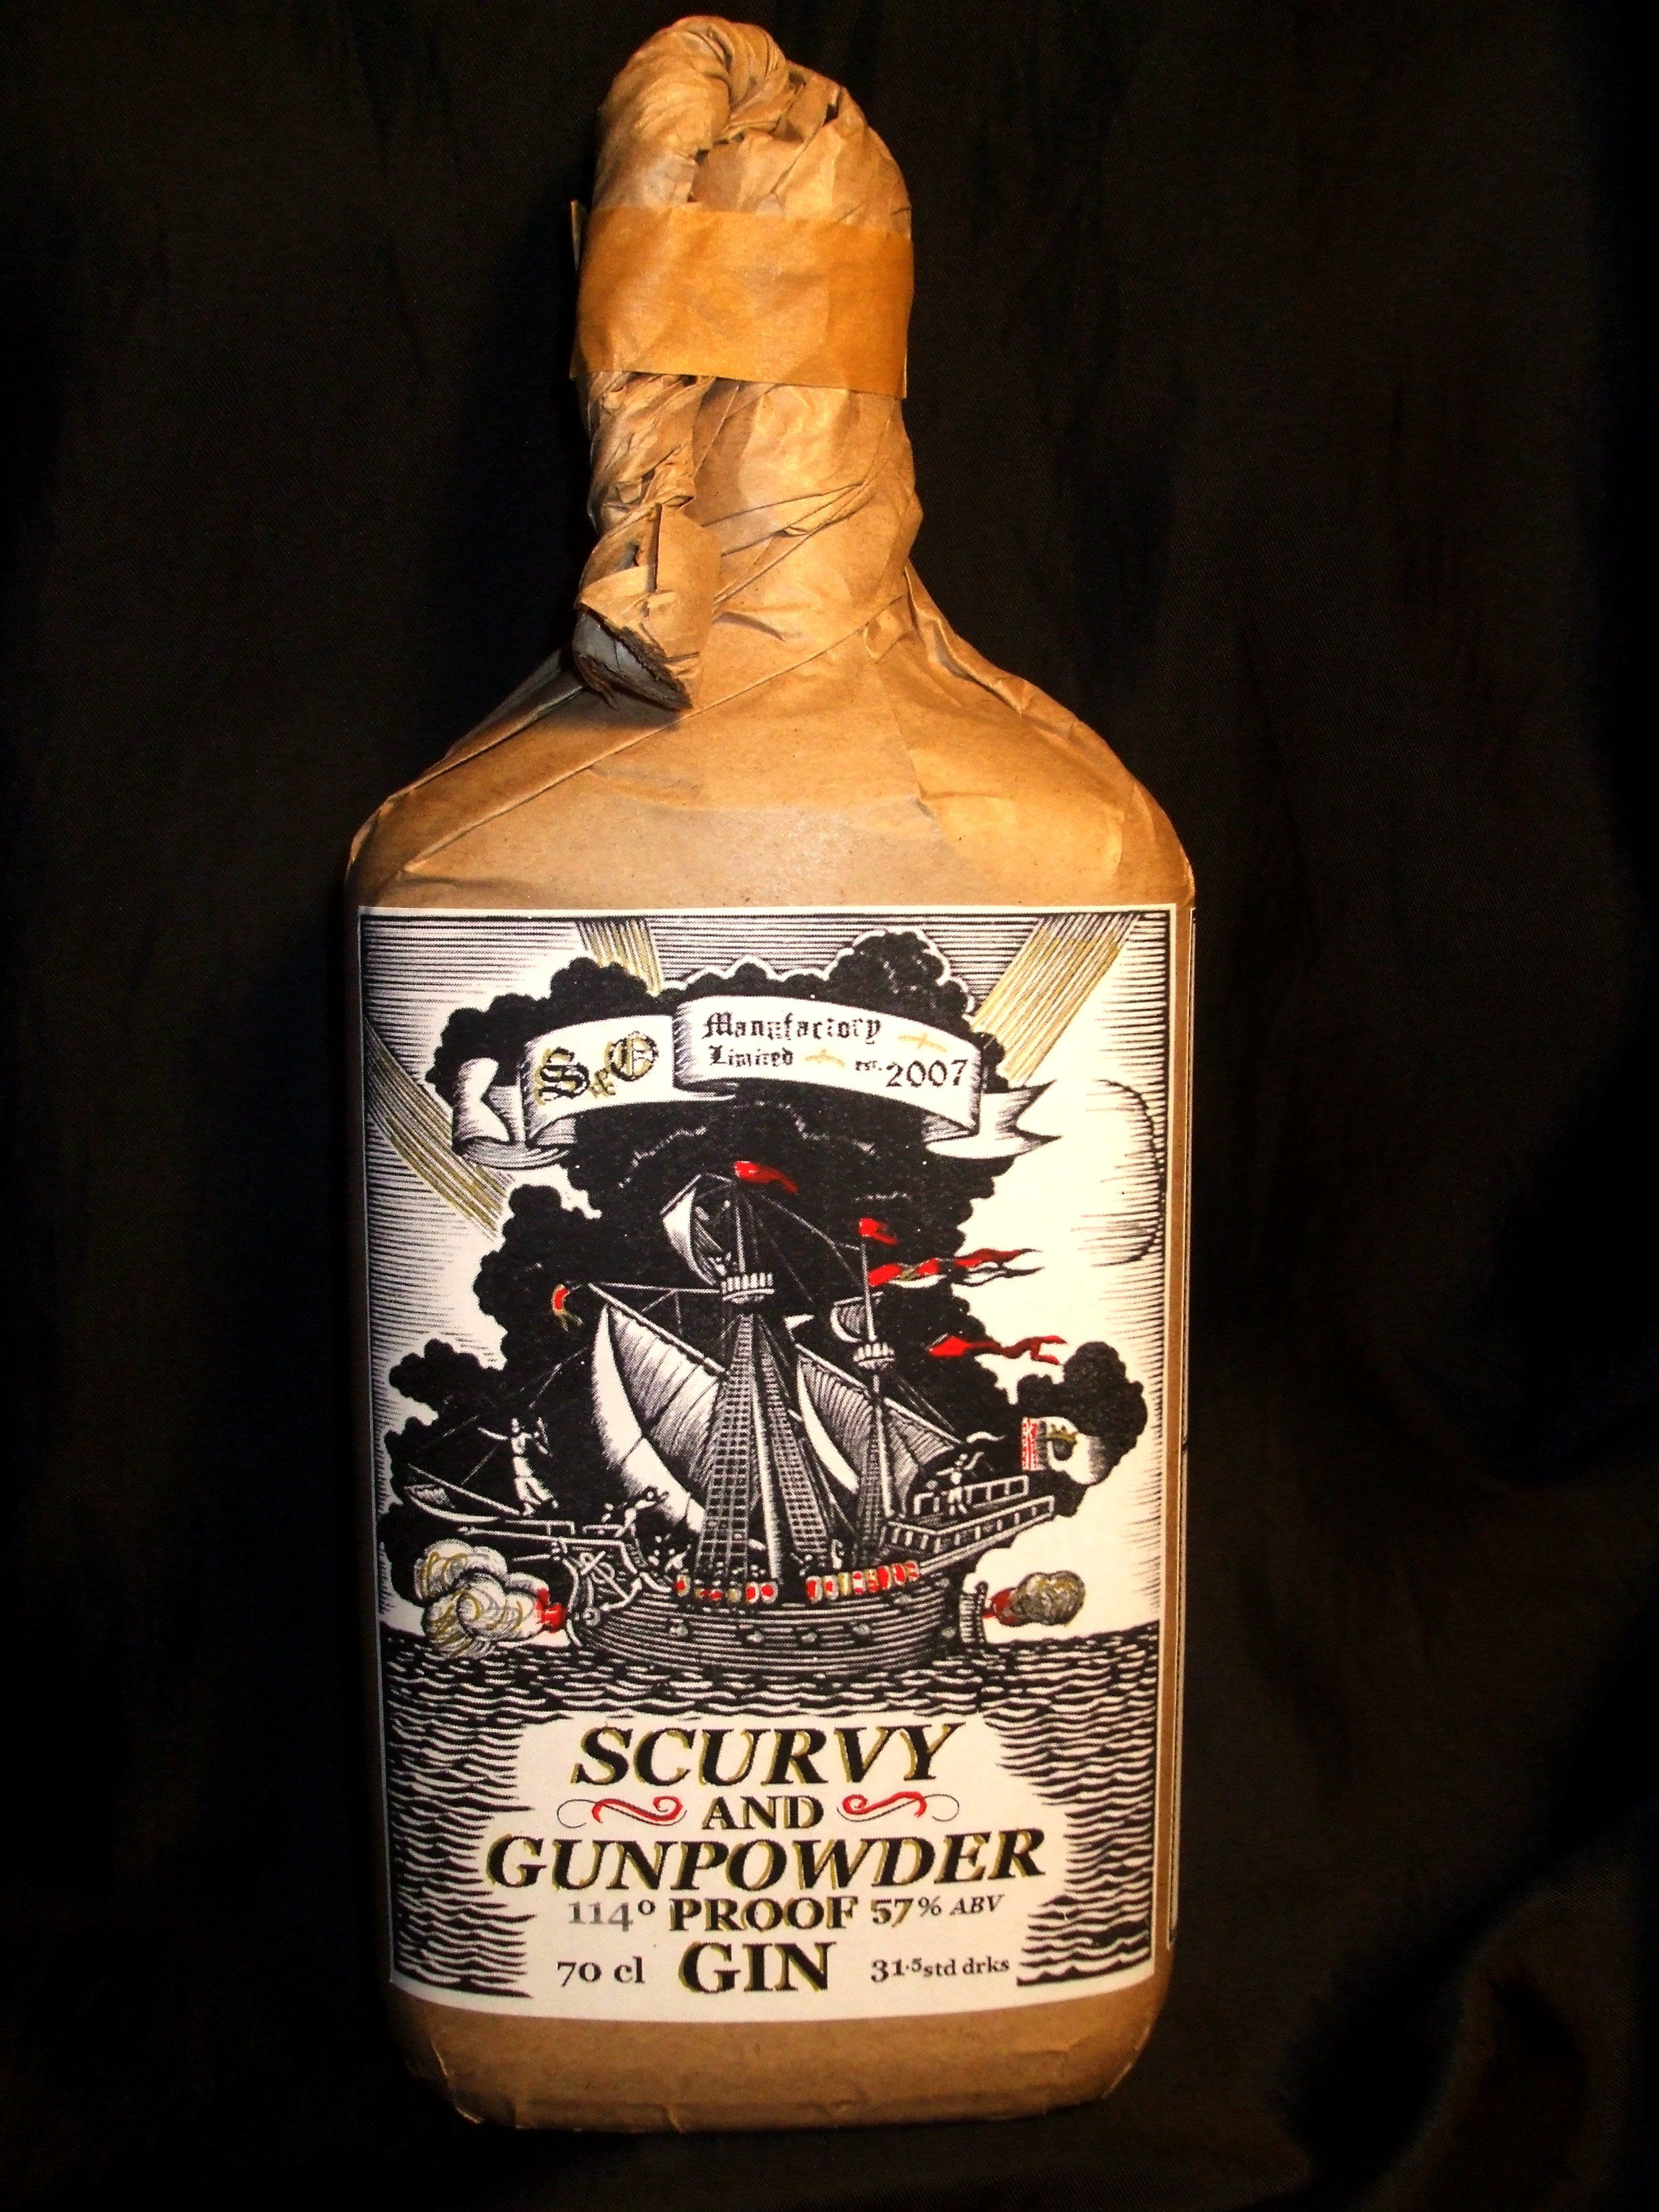 s o s scurvy gunpowder proof gin 57 abv 700ml bottle a navy